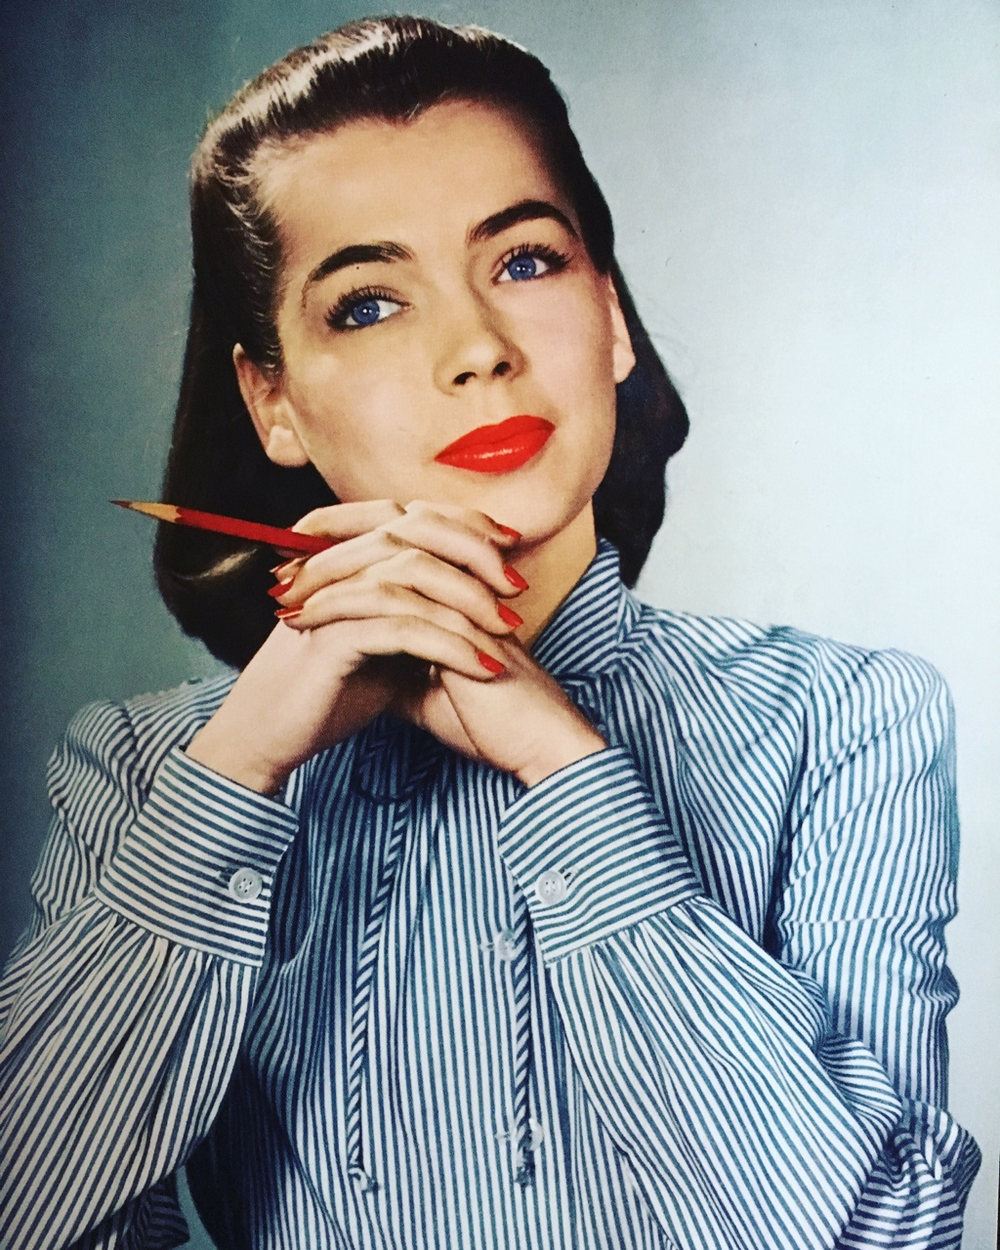 Mademoiselle. May 1943. Look sharp.